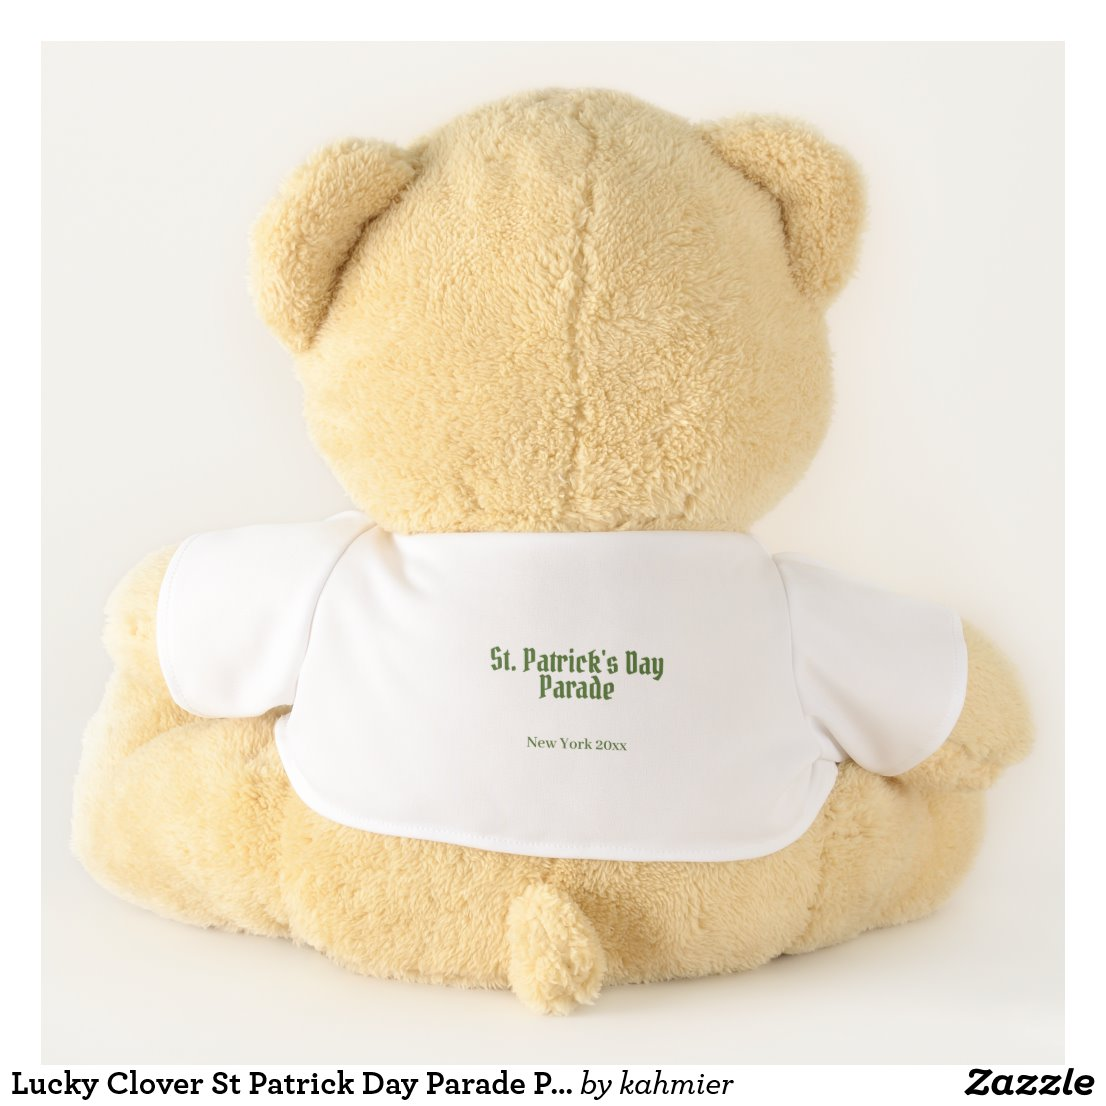 Lucky Clover St Patrick Day Parade Place and Date Teddy Bear